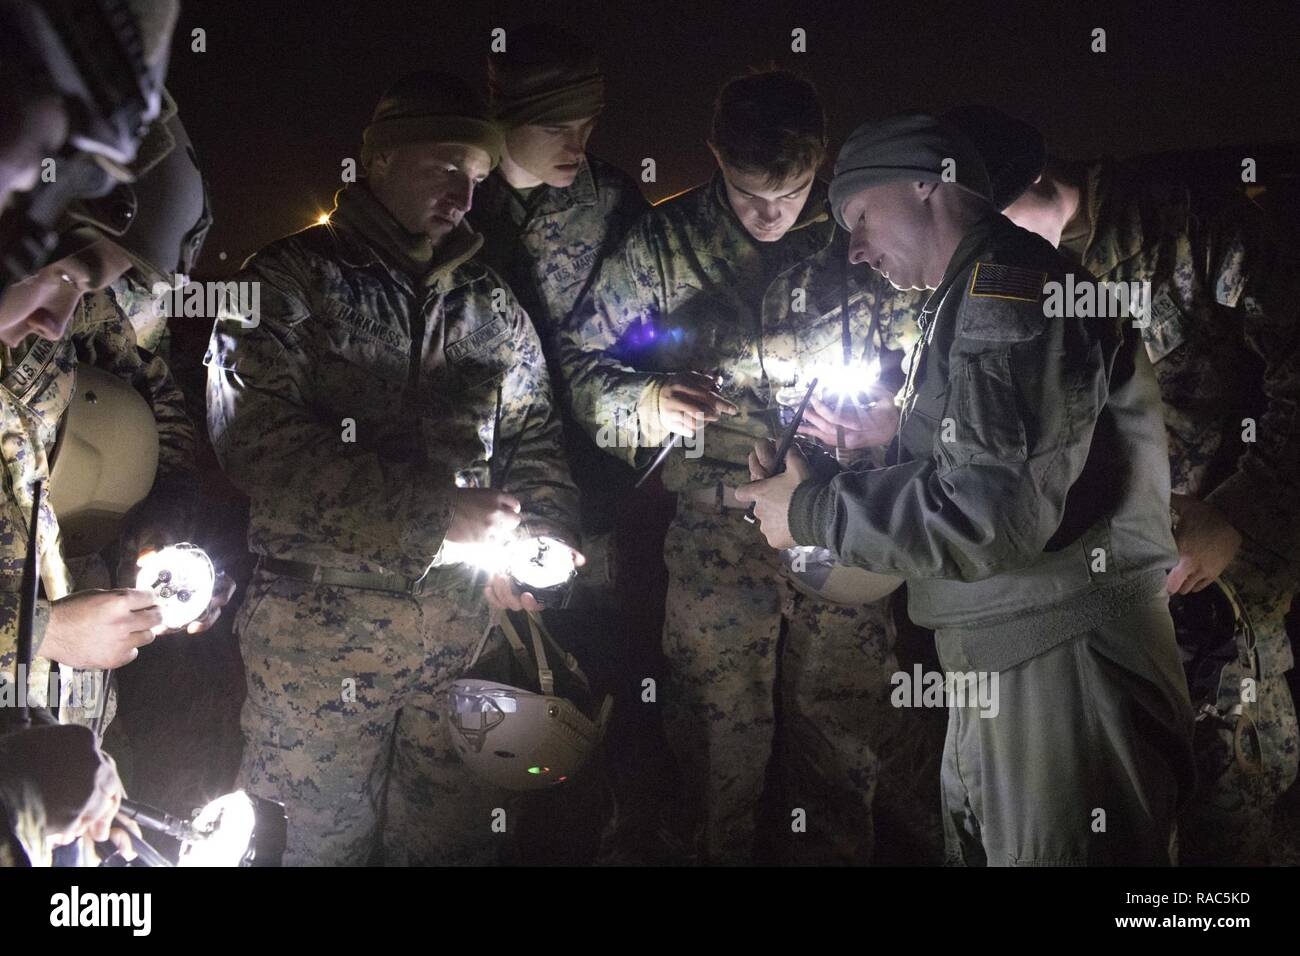 1st Lt. John Adams, right,  36th Airlift Squadron C-130 Hercules navigator, shows Marines from the 3rd Reconnaissance Battalion, 3rd Marine Division, III Marine Expeditionary Force how to operate drop zone indicator lights at Yokota Air Base, Japan, Jan. 11, 2017, during Jump week. III MEF Marines conducted weeklong jump training from a U.S. Air Force C-130H, assigned to the 36 AS. The training not only allowed the Marines to practice jumping, but it also allowed the Yokota aircrews to practice flight tactics and time-package drops. Stock Photo